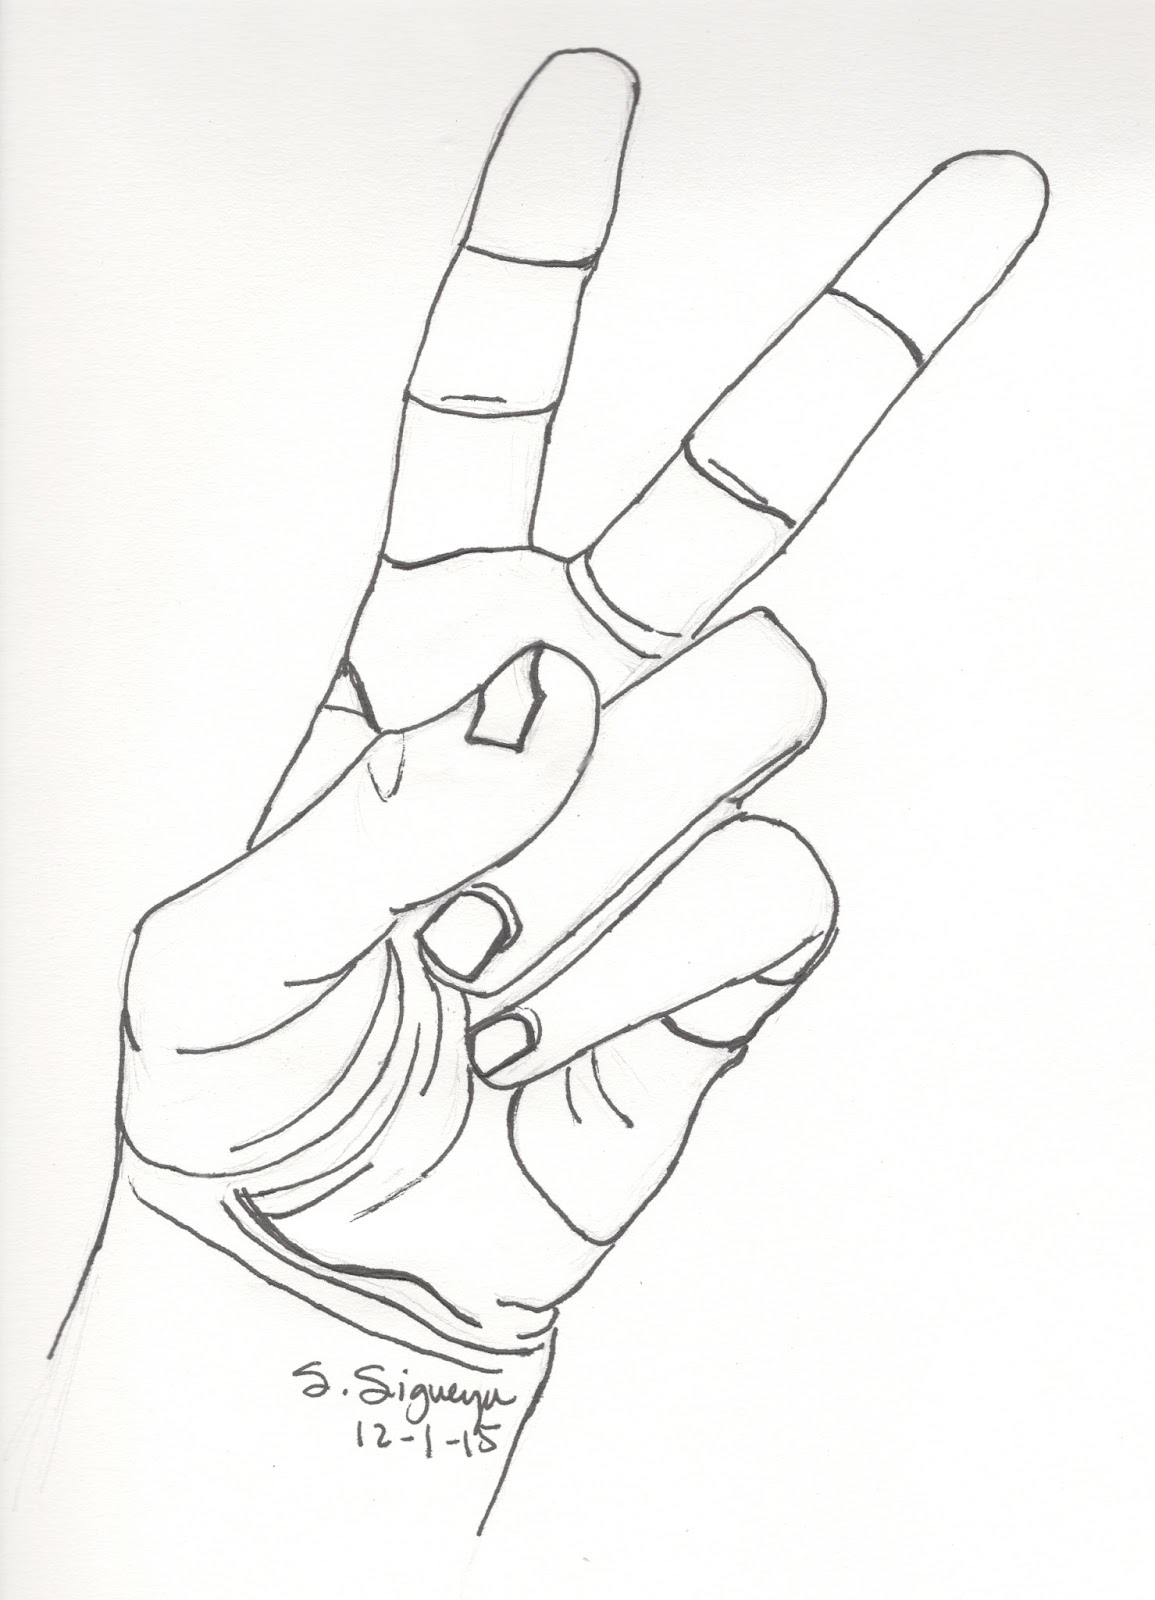 Drawn peace sign hand drawing Peace hand hand drawing